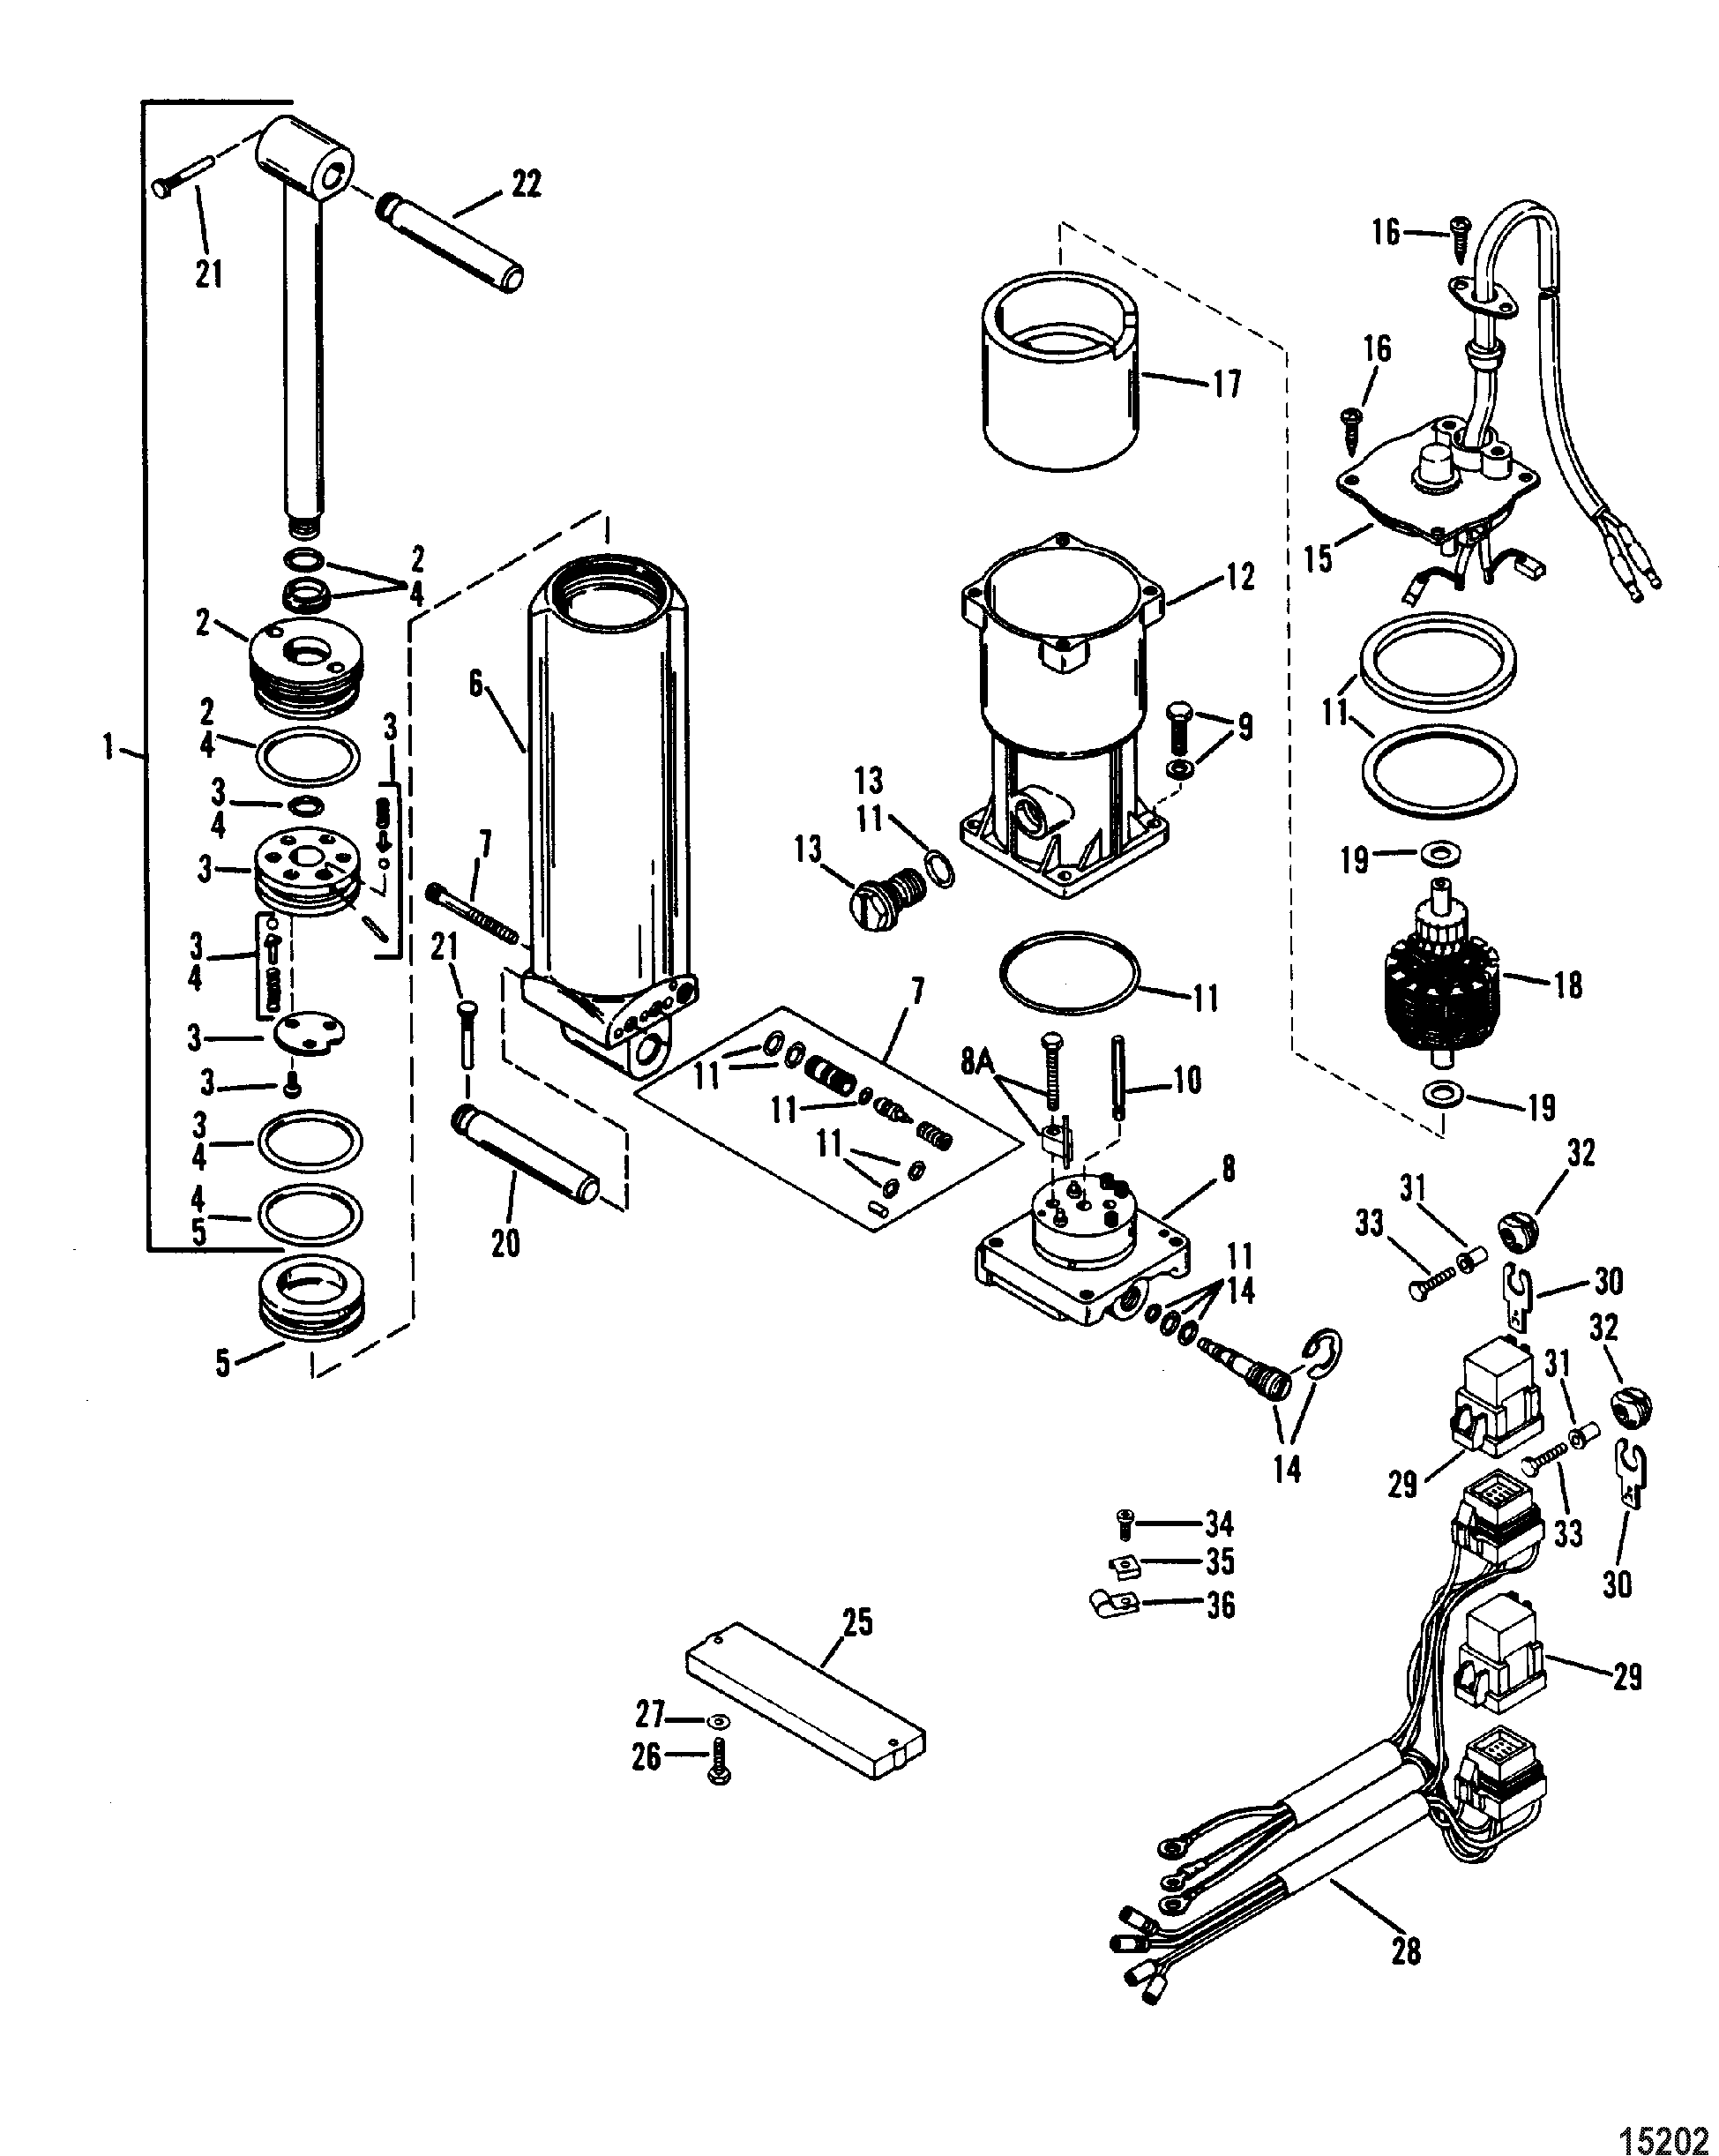 1988 mercury outboard diagram 1988 mercury outboard diagram imageresizertool com